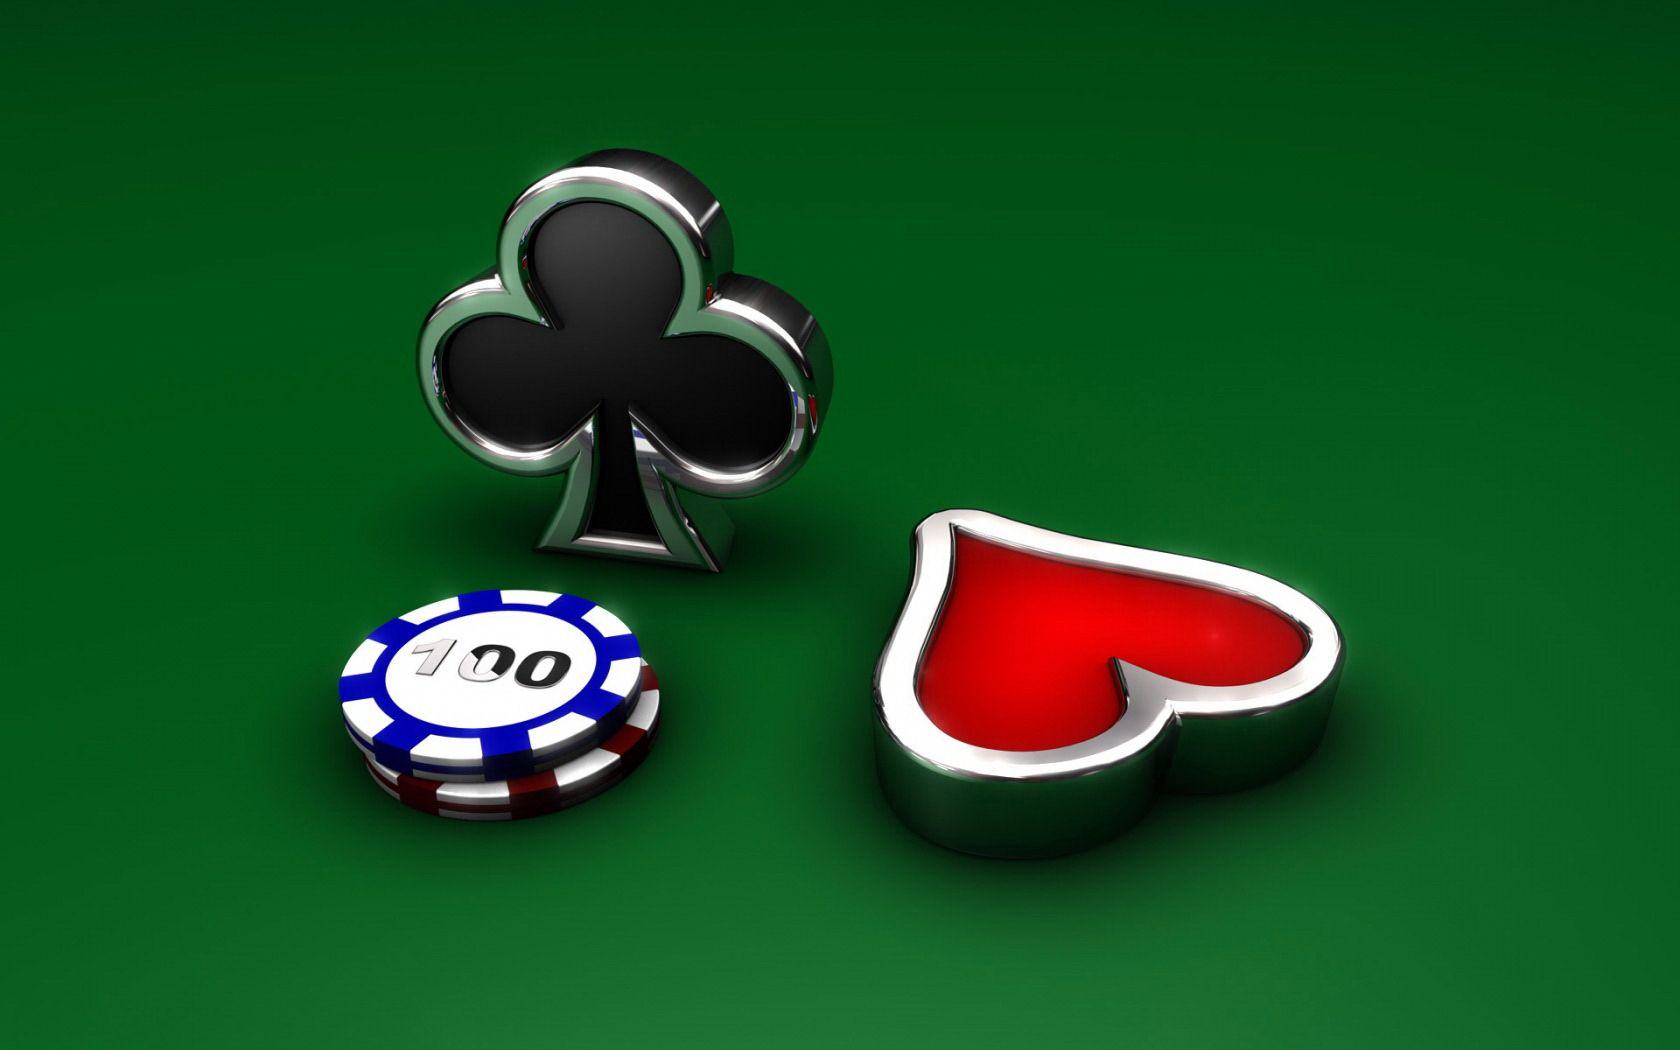 How To Buy Online Gambling Sites On Tight Finances